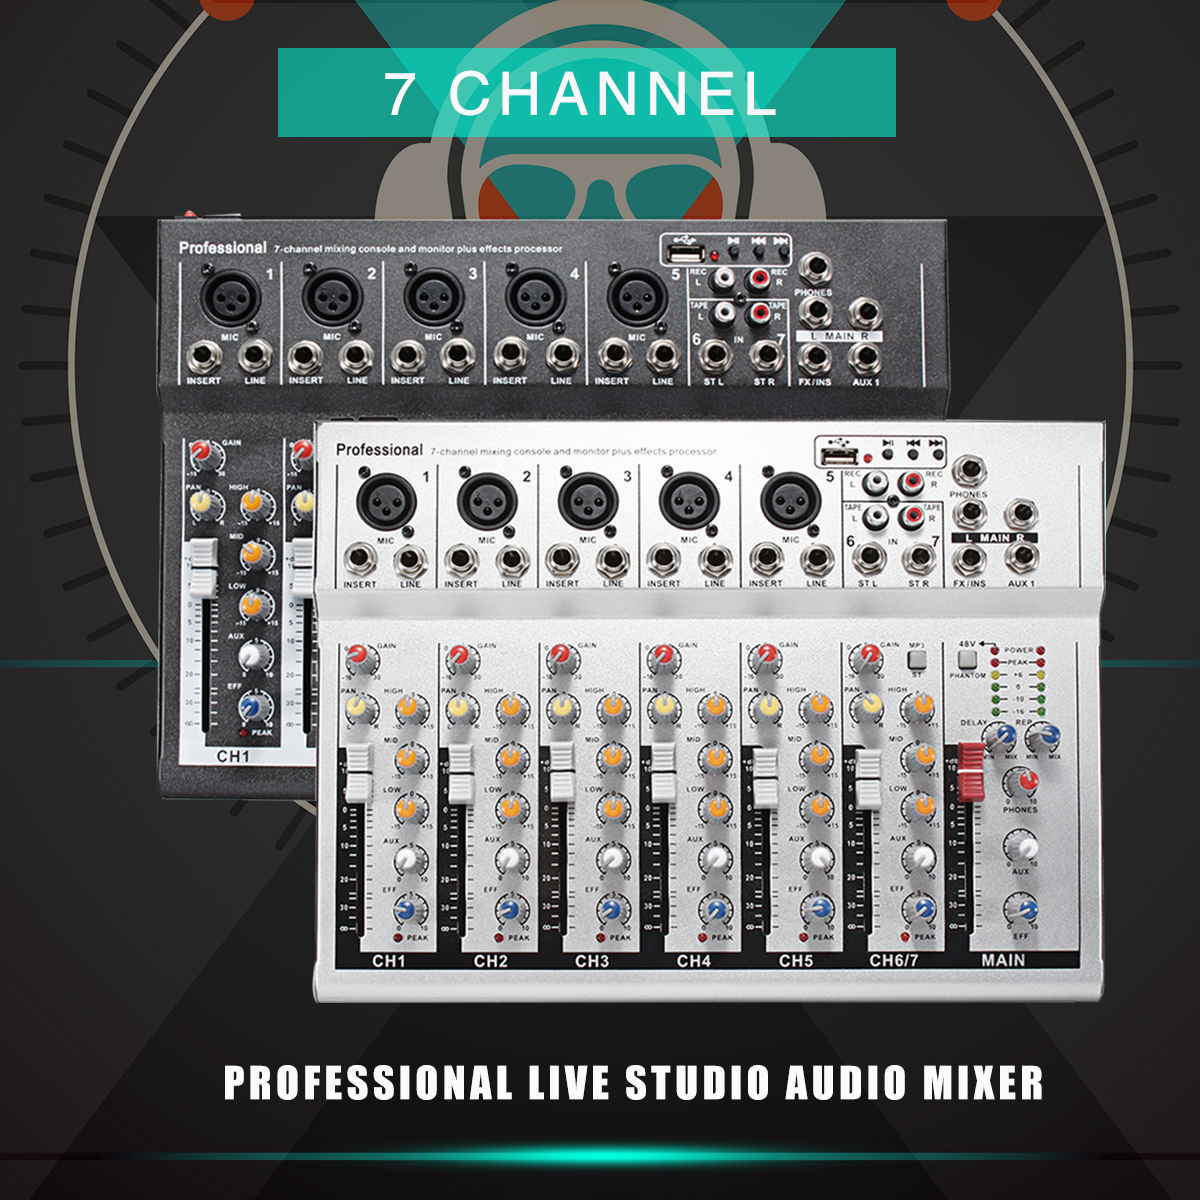 Leory 1Set Portable Mini Professional 7 Channel Live Studio Audio Mixer USB Mixing Console Network Sound Card for Family KTV professional 4 channel live mixing studio audio sound console network anchor portable mixing device vocal effect processor